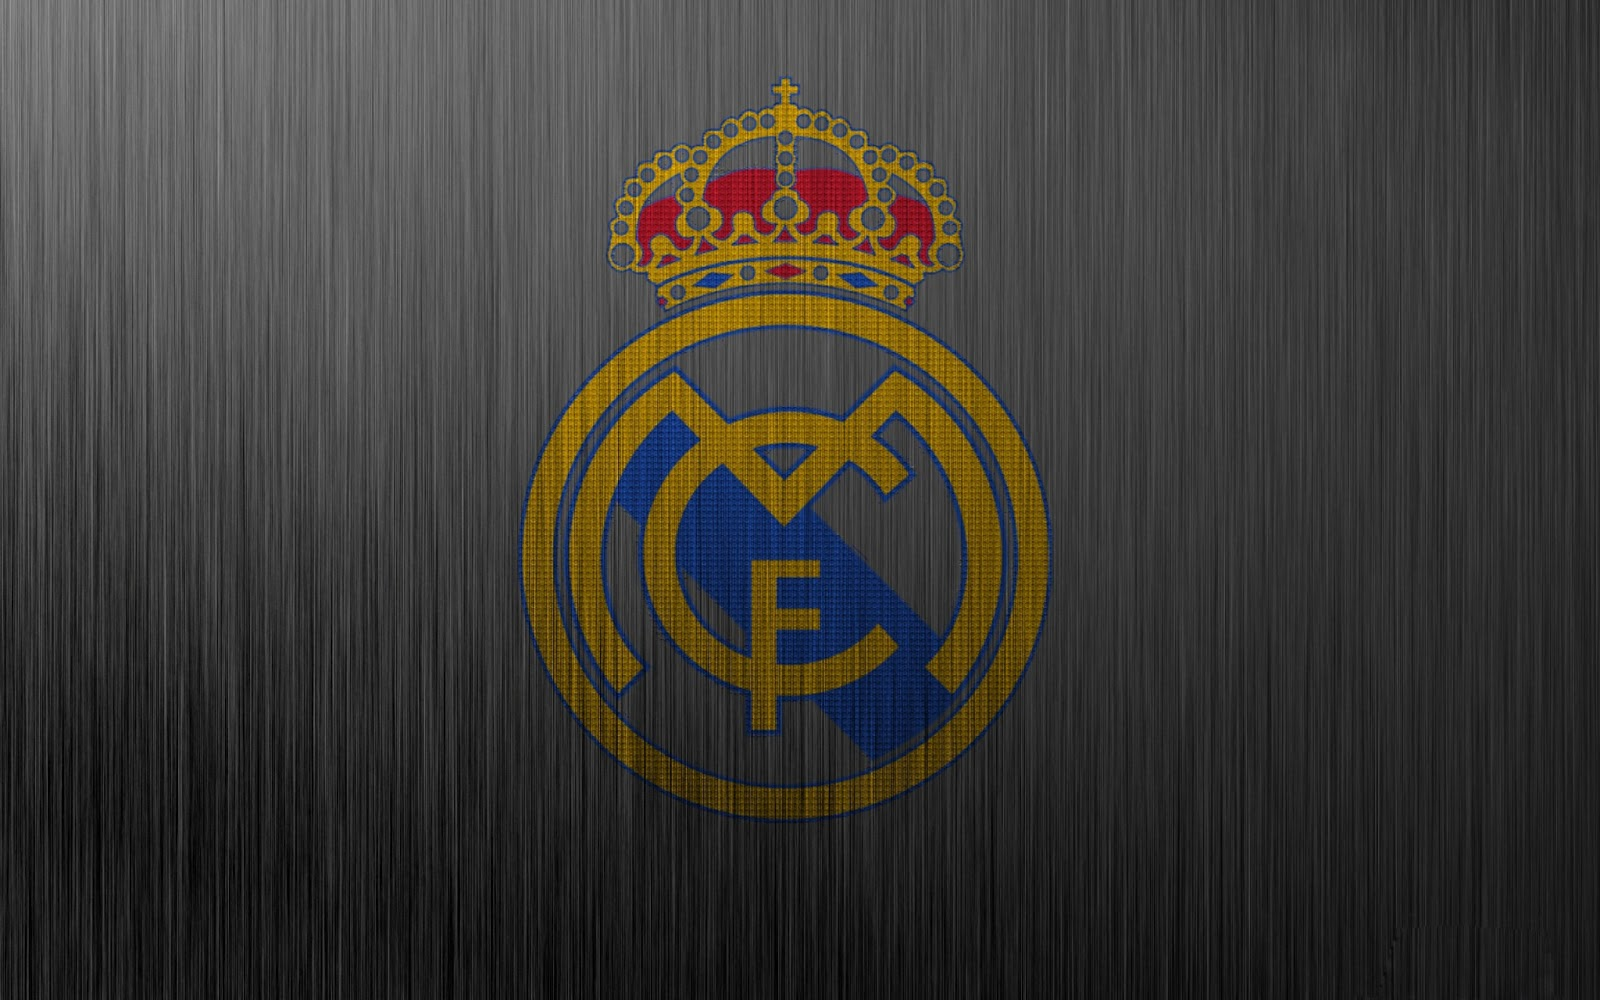 Real Madrid: All Wallpapers: Real Madrid 2013 Wallpapers